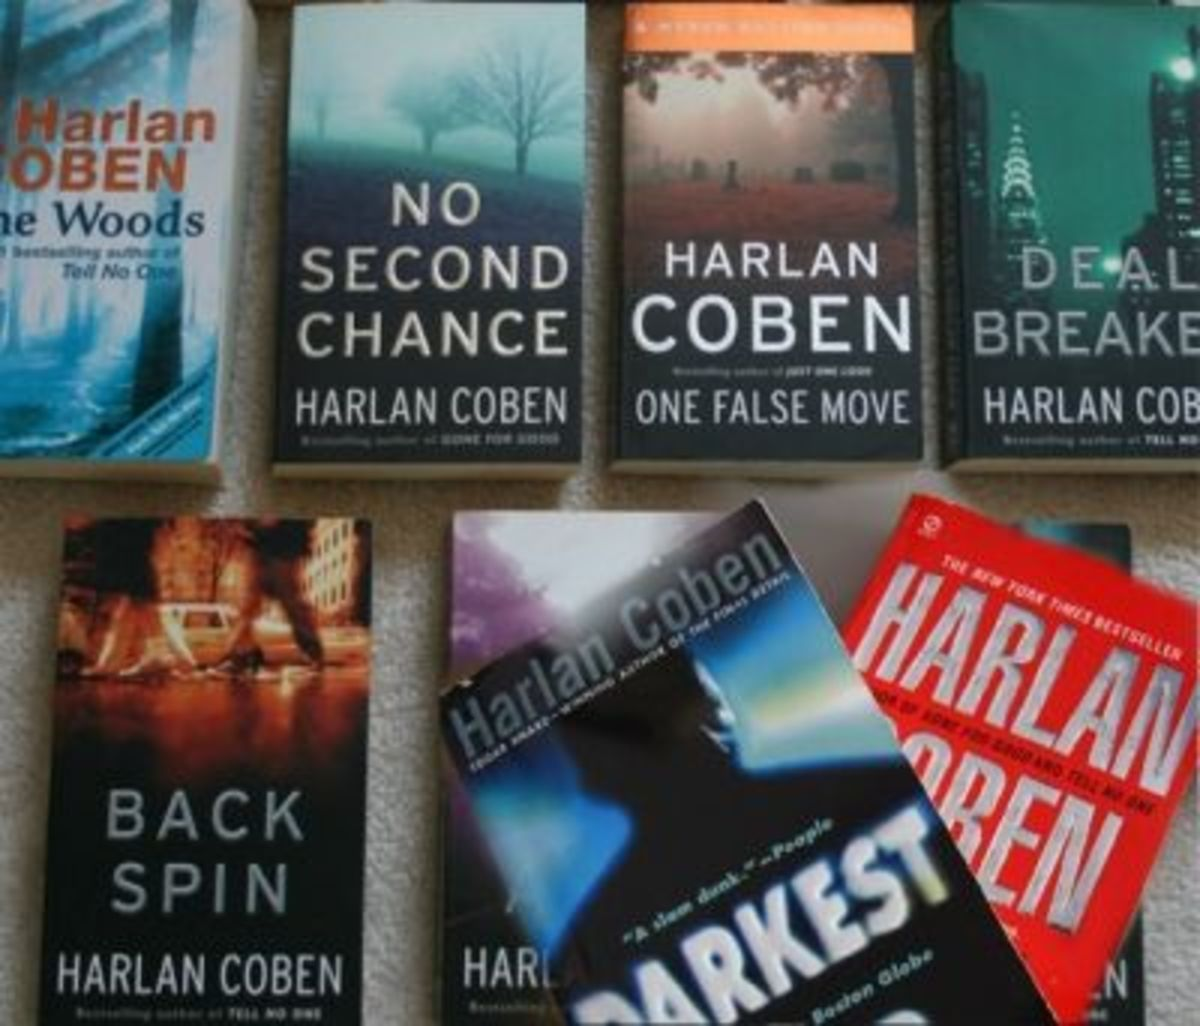 A few Harlan Coben books from my collection